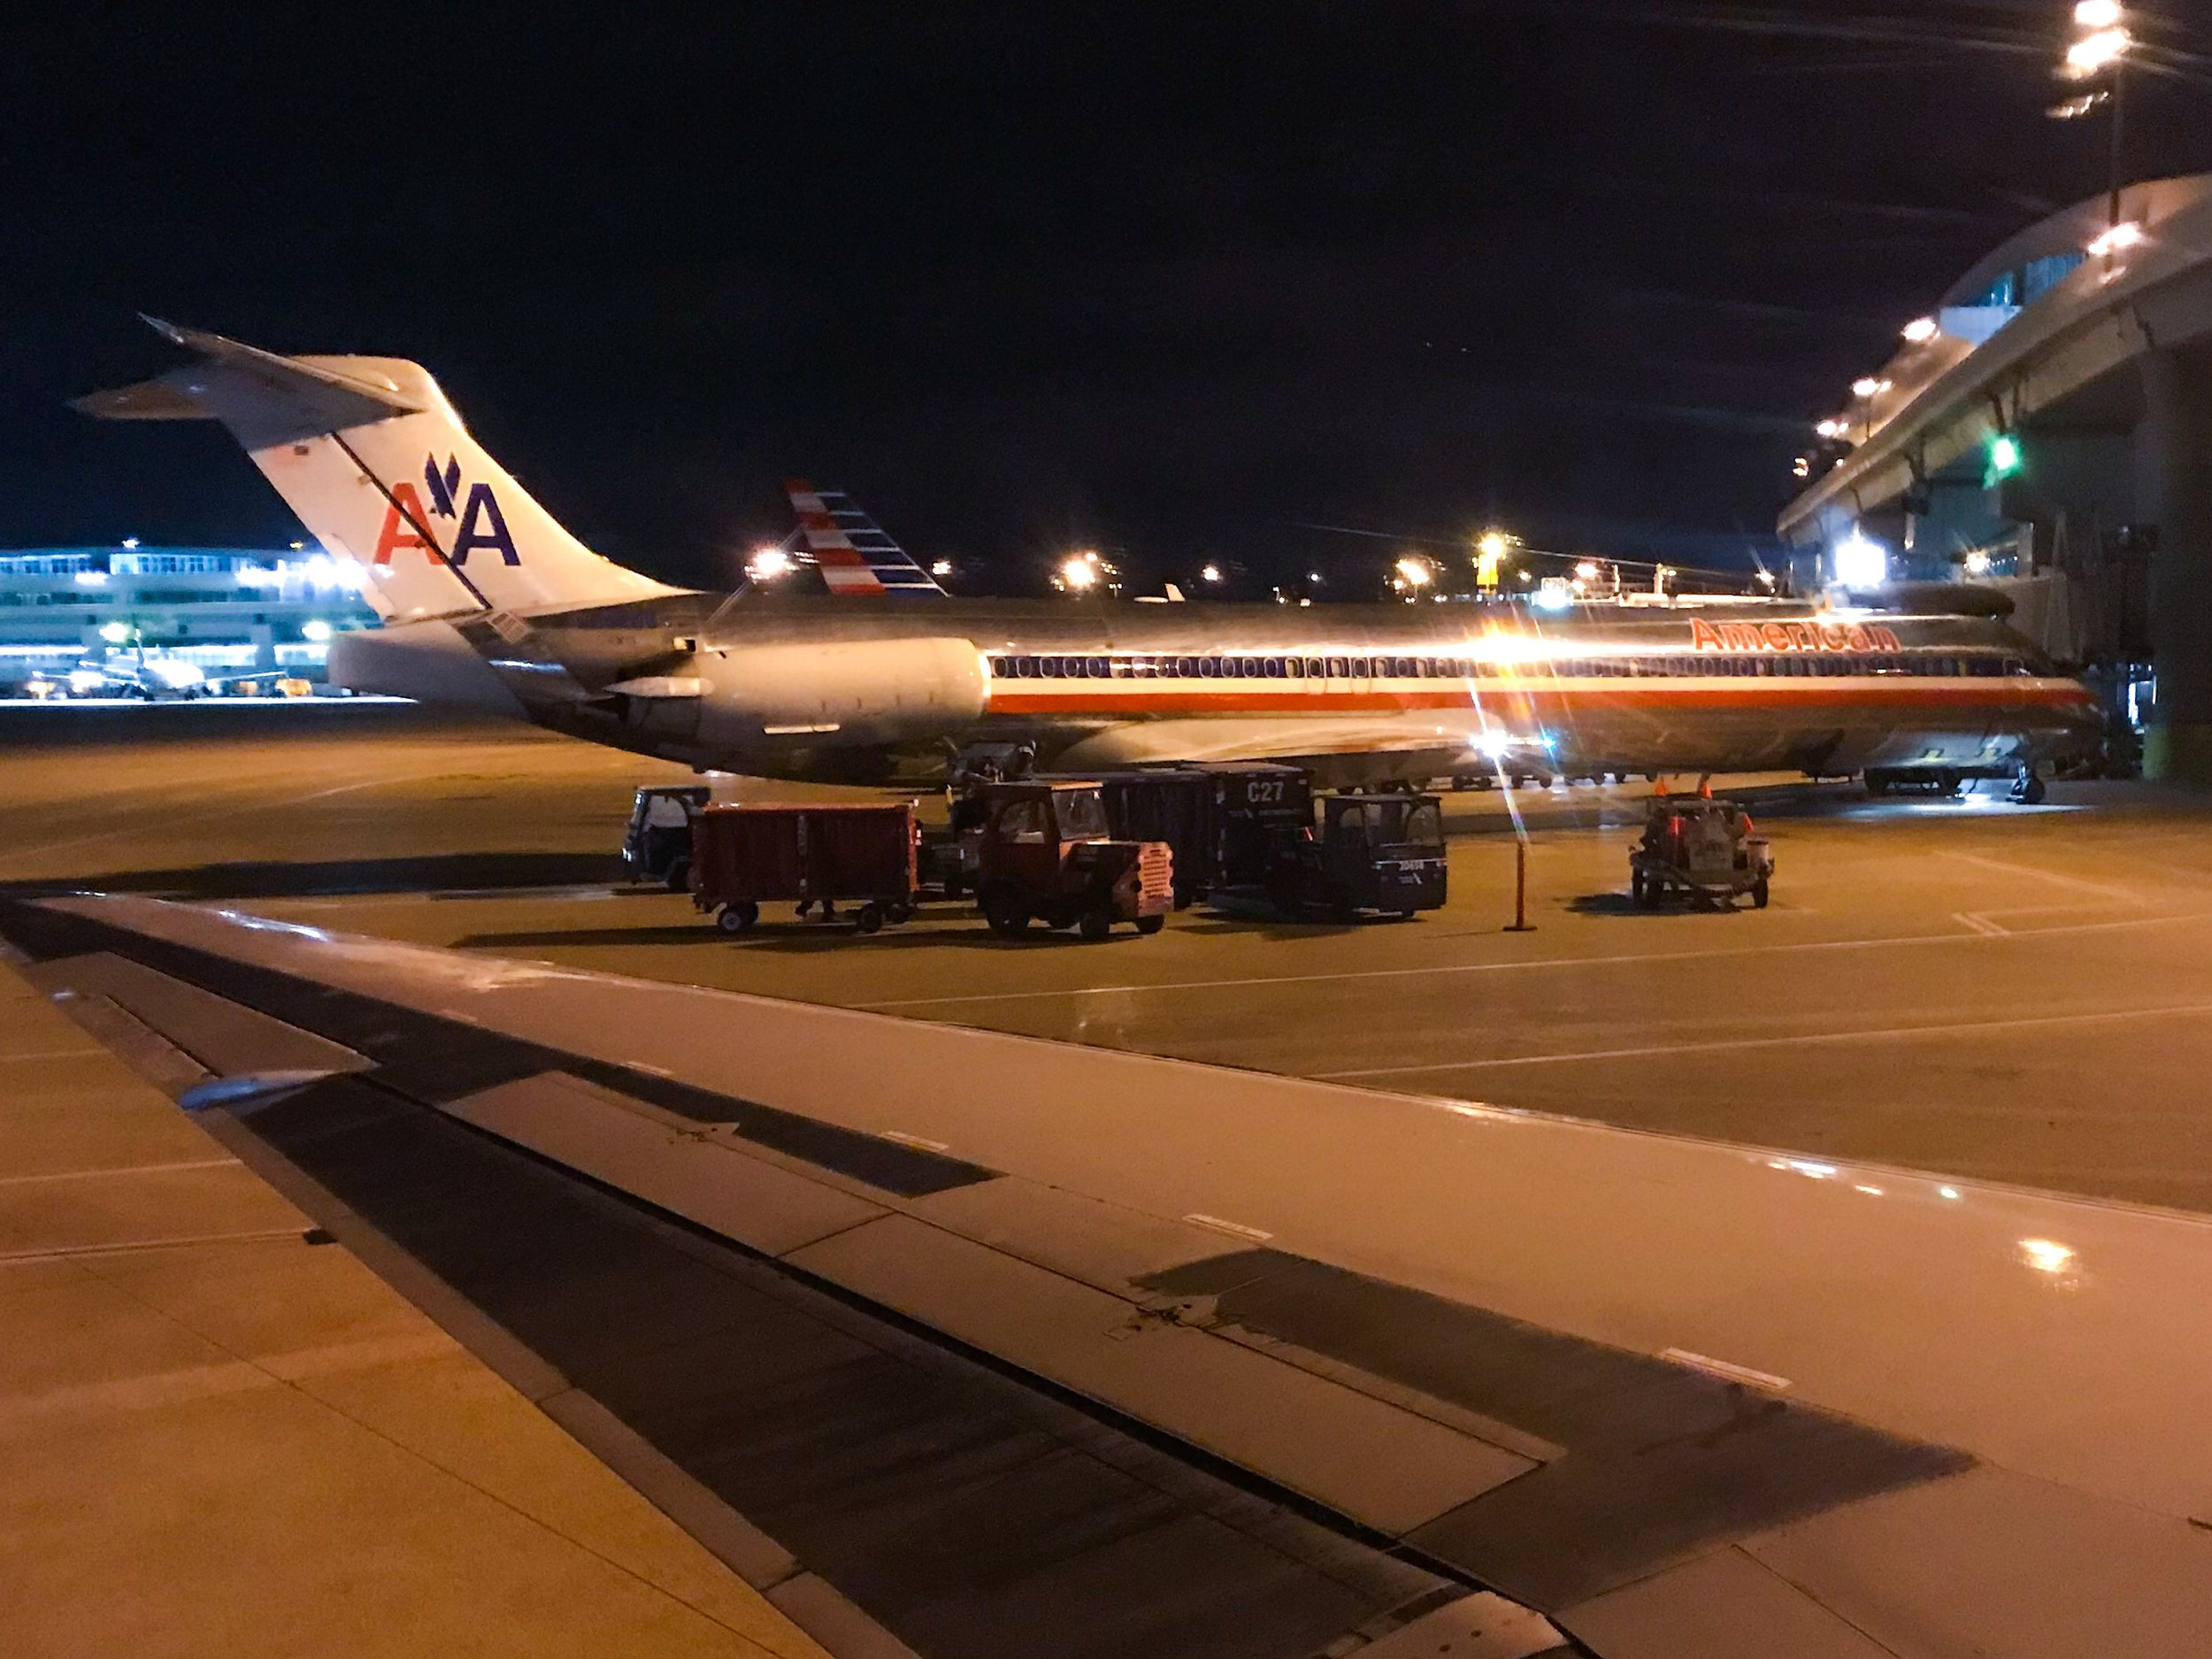 Pushing back from the gate in Dallas/Ft. Worth.